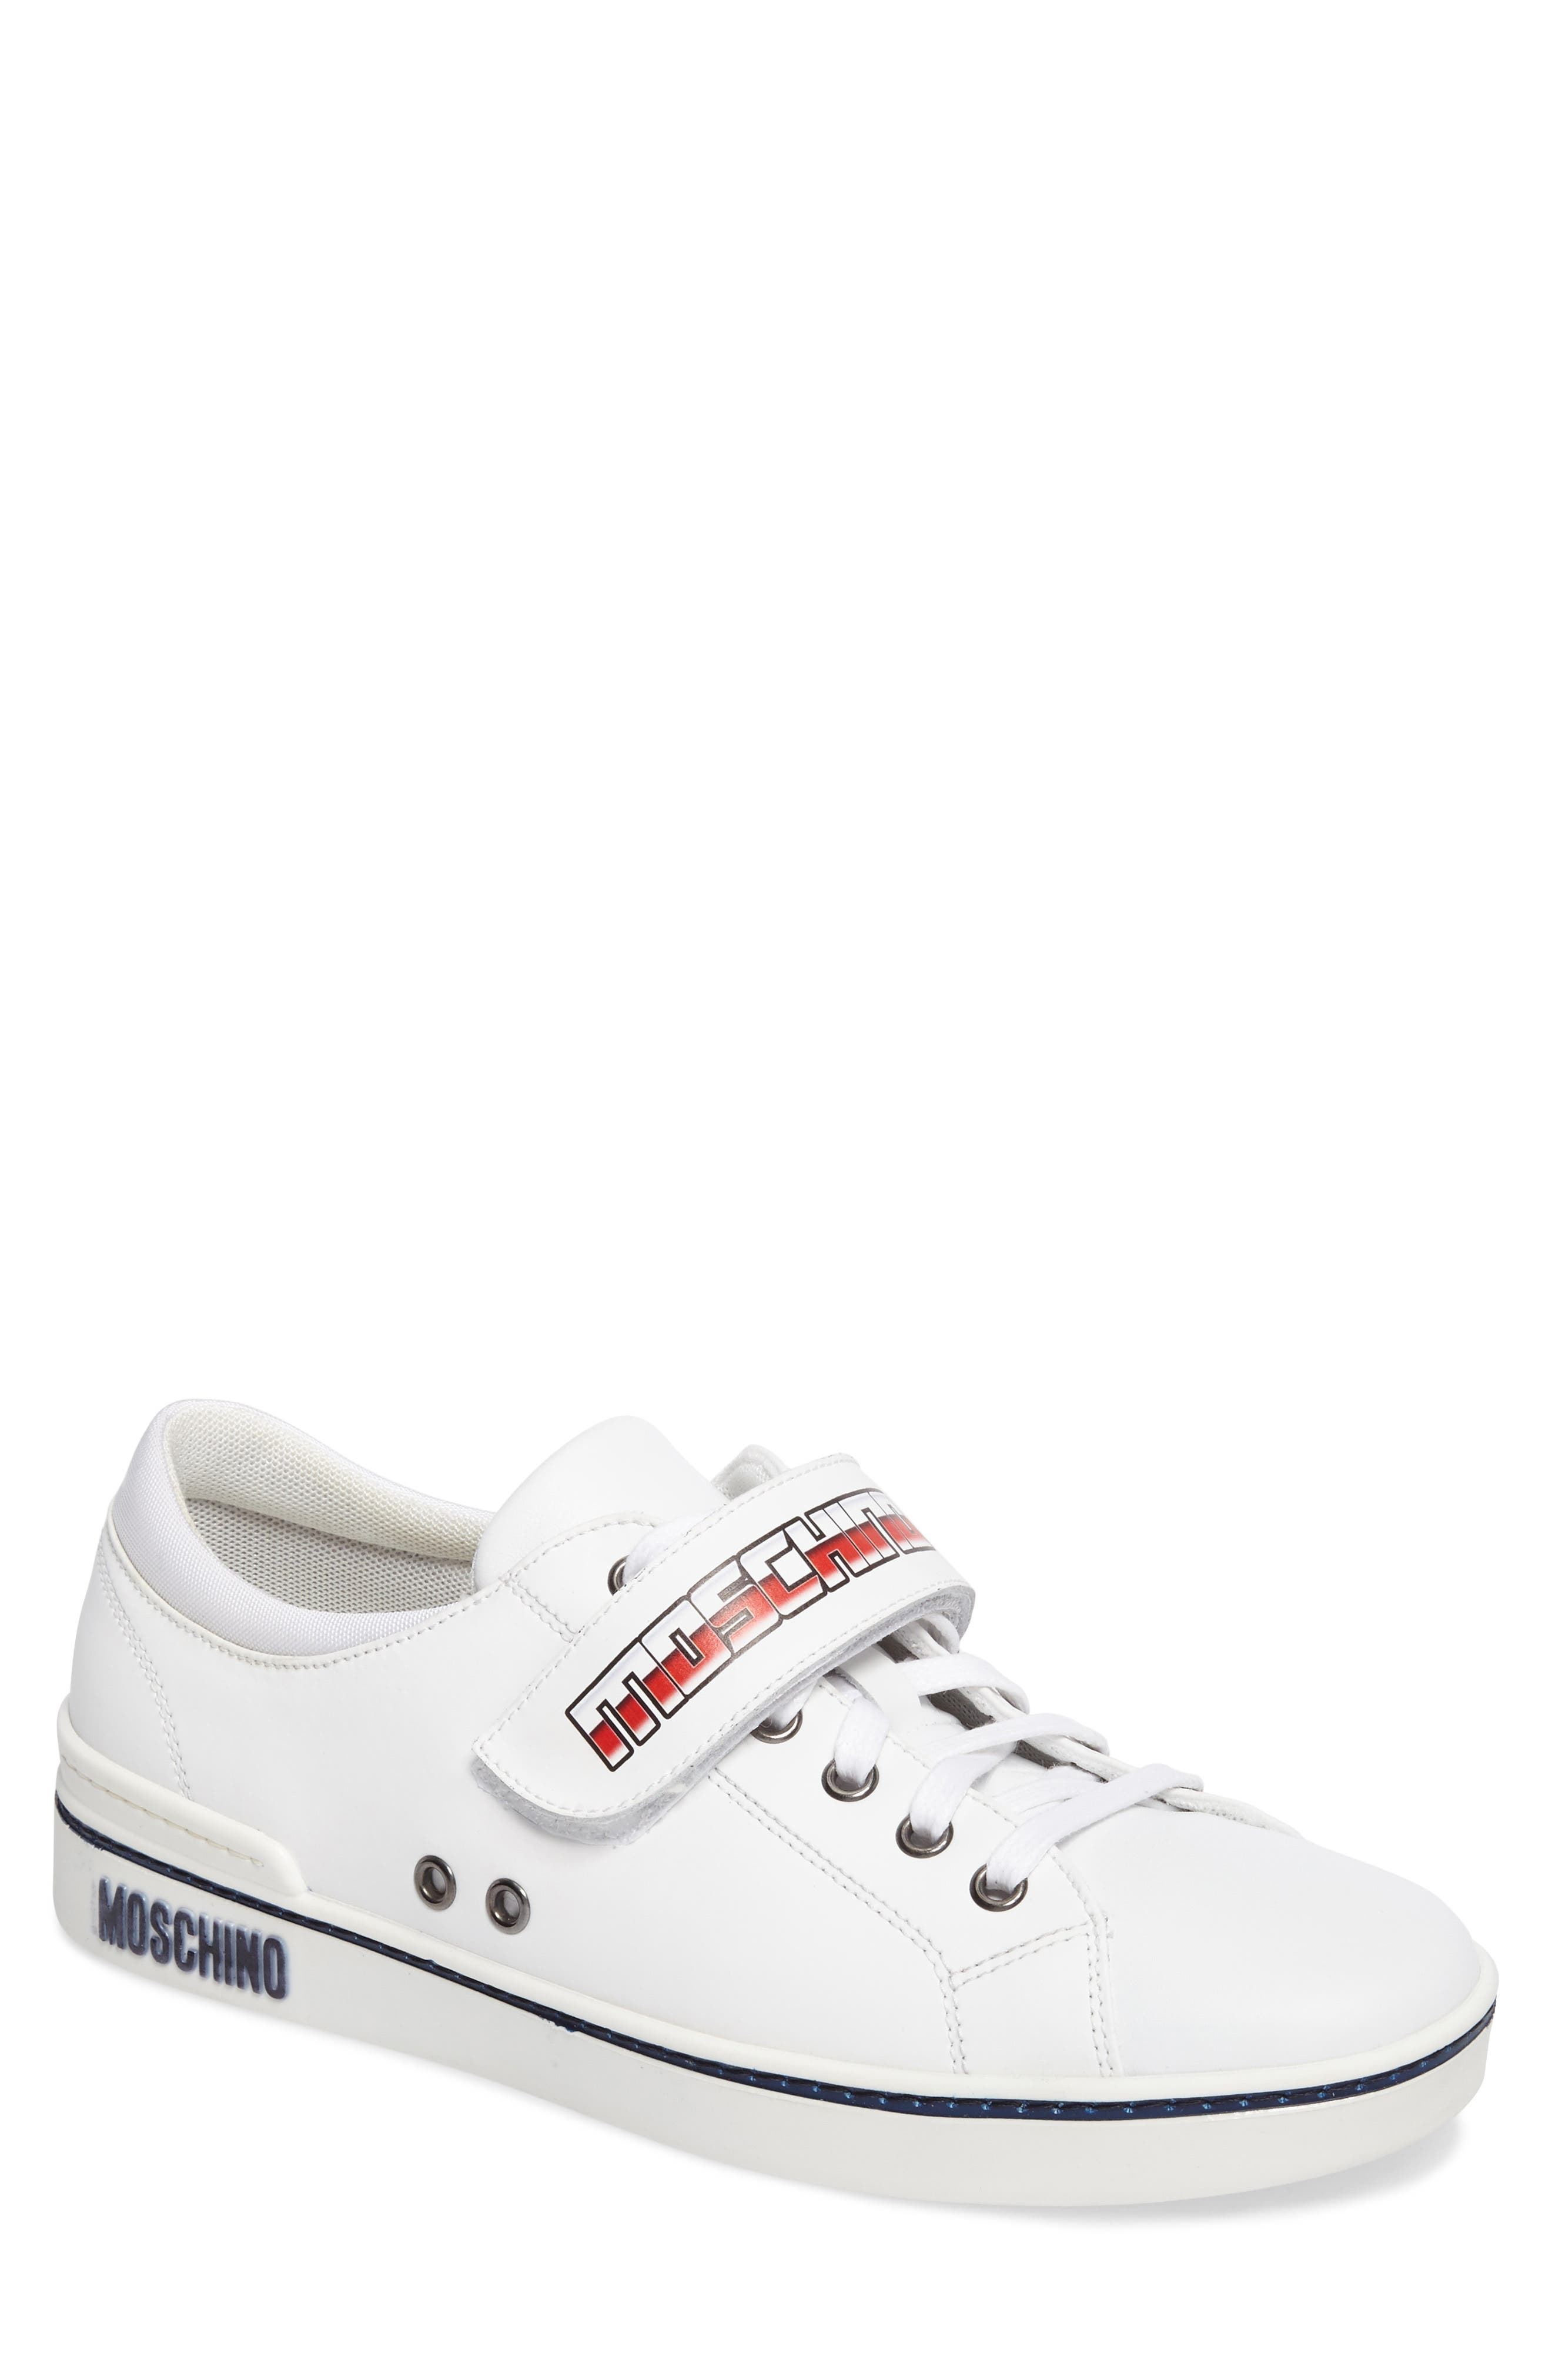 Strap Sneaker,                             Main thumbnail 1, color,                             White Leather